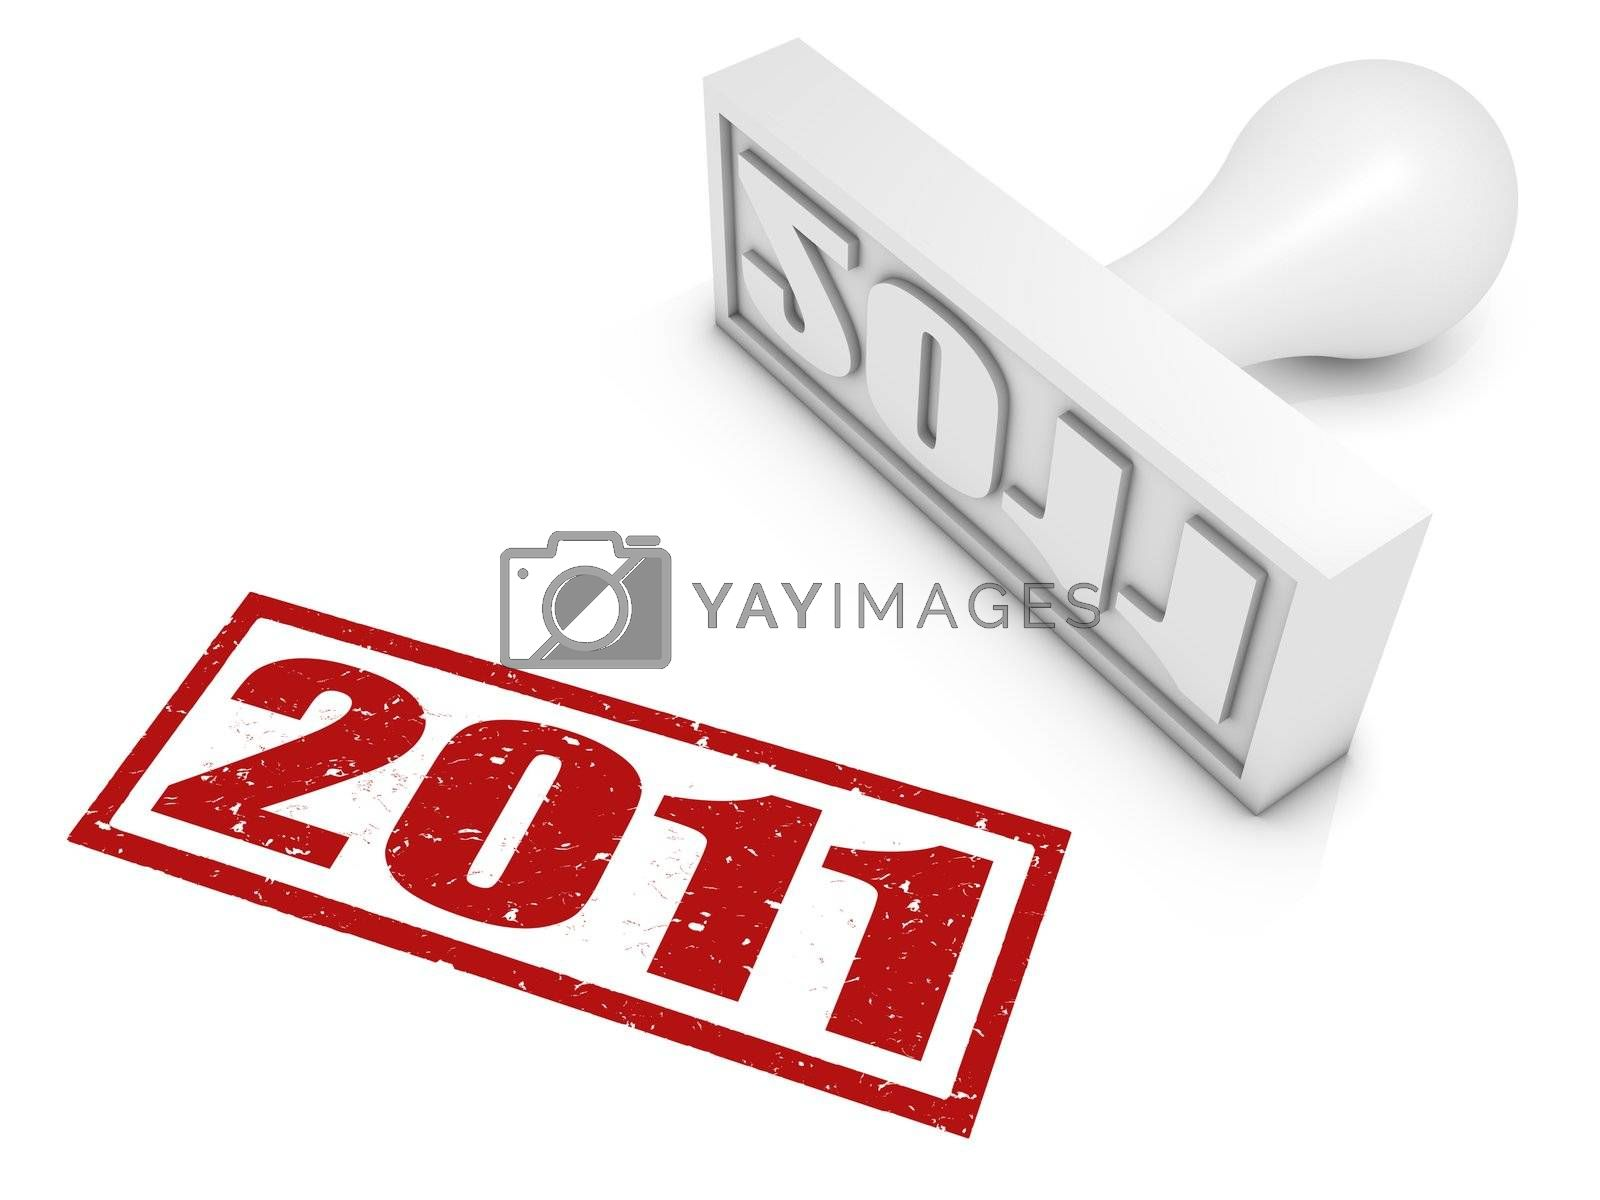 2011 rubber stamp. Part of a series of stamp concepts.